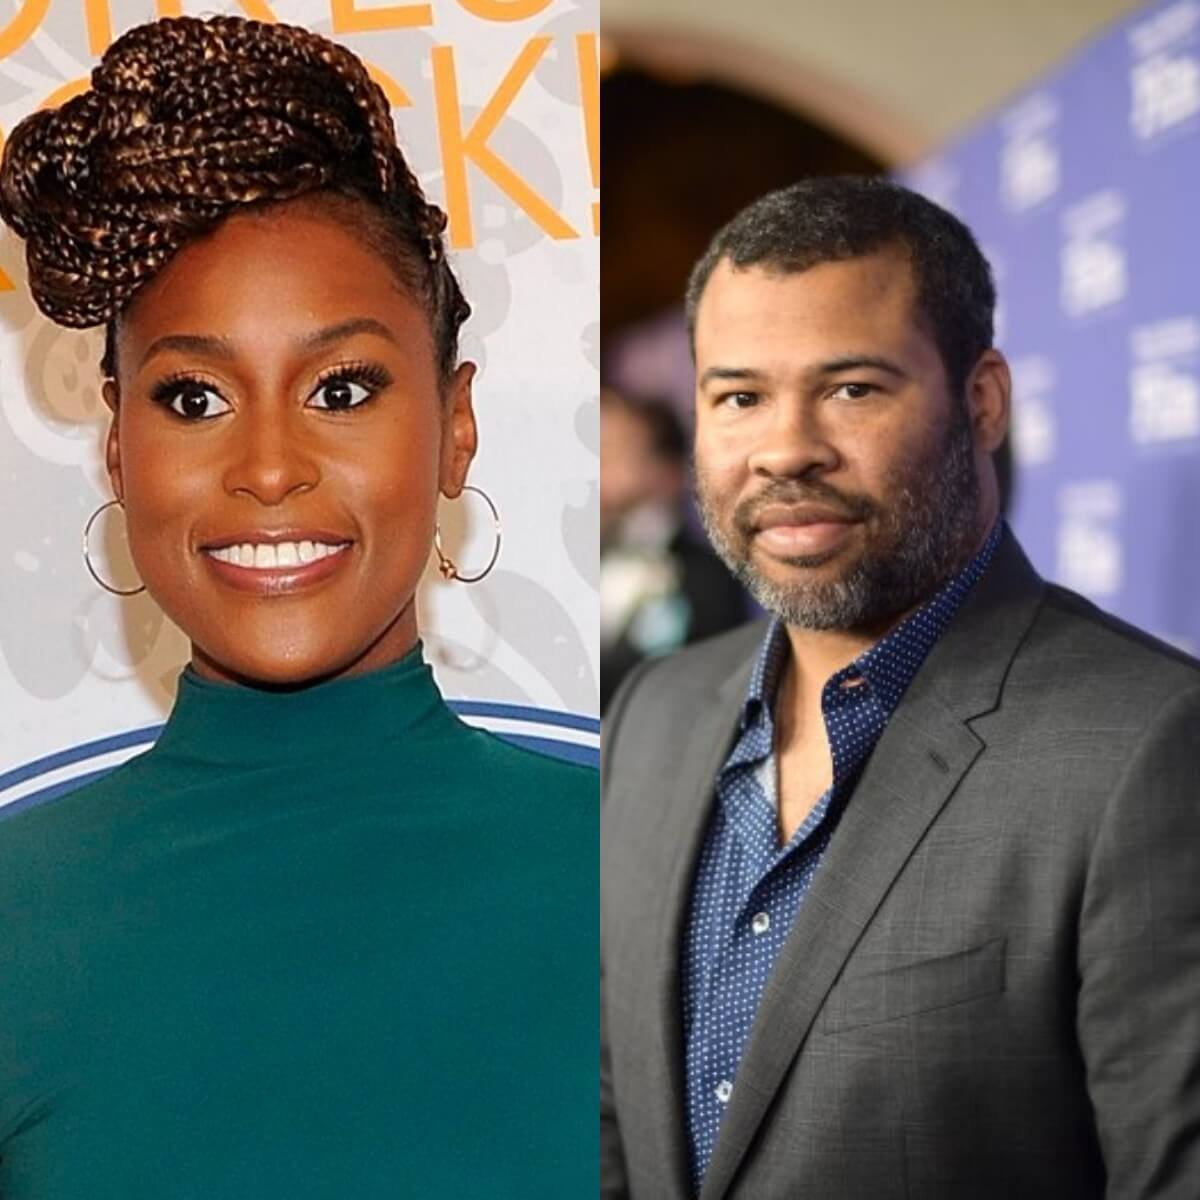 Issa Rae and director Jordan Peele making a supernatural film